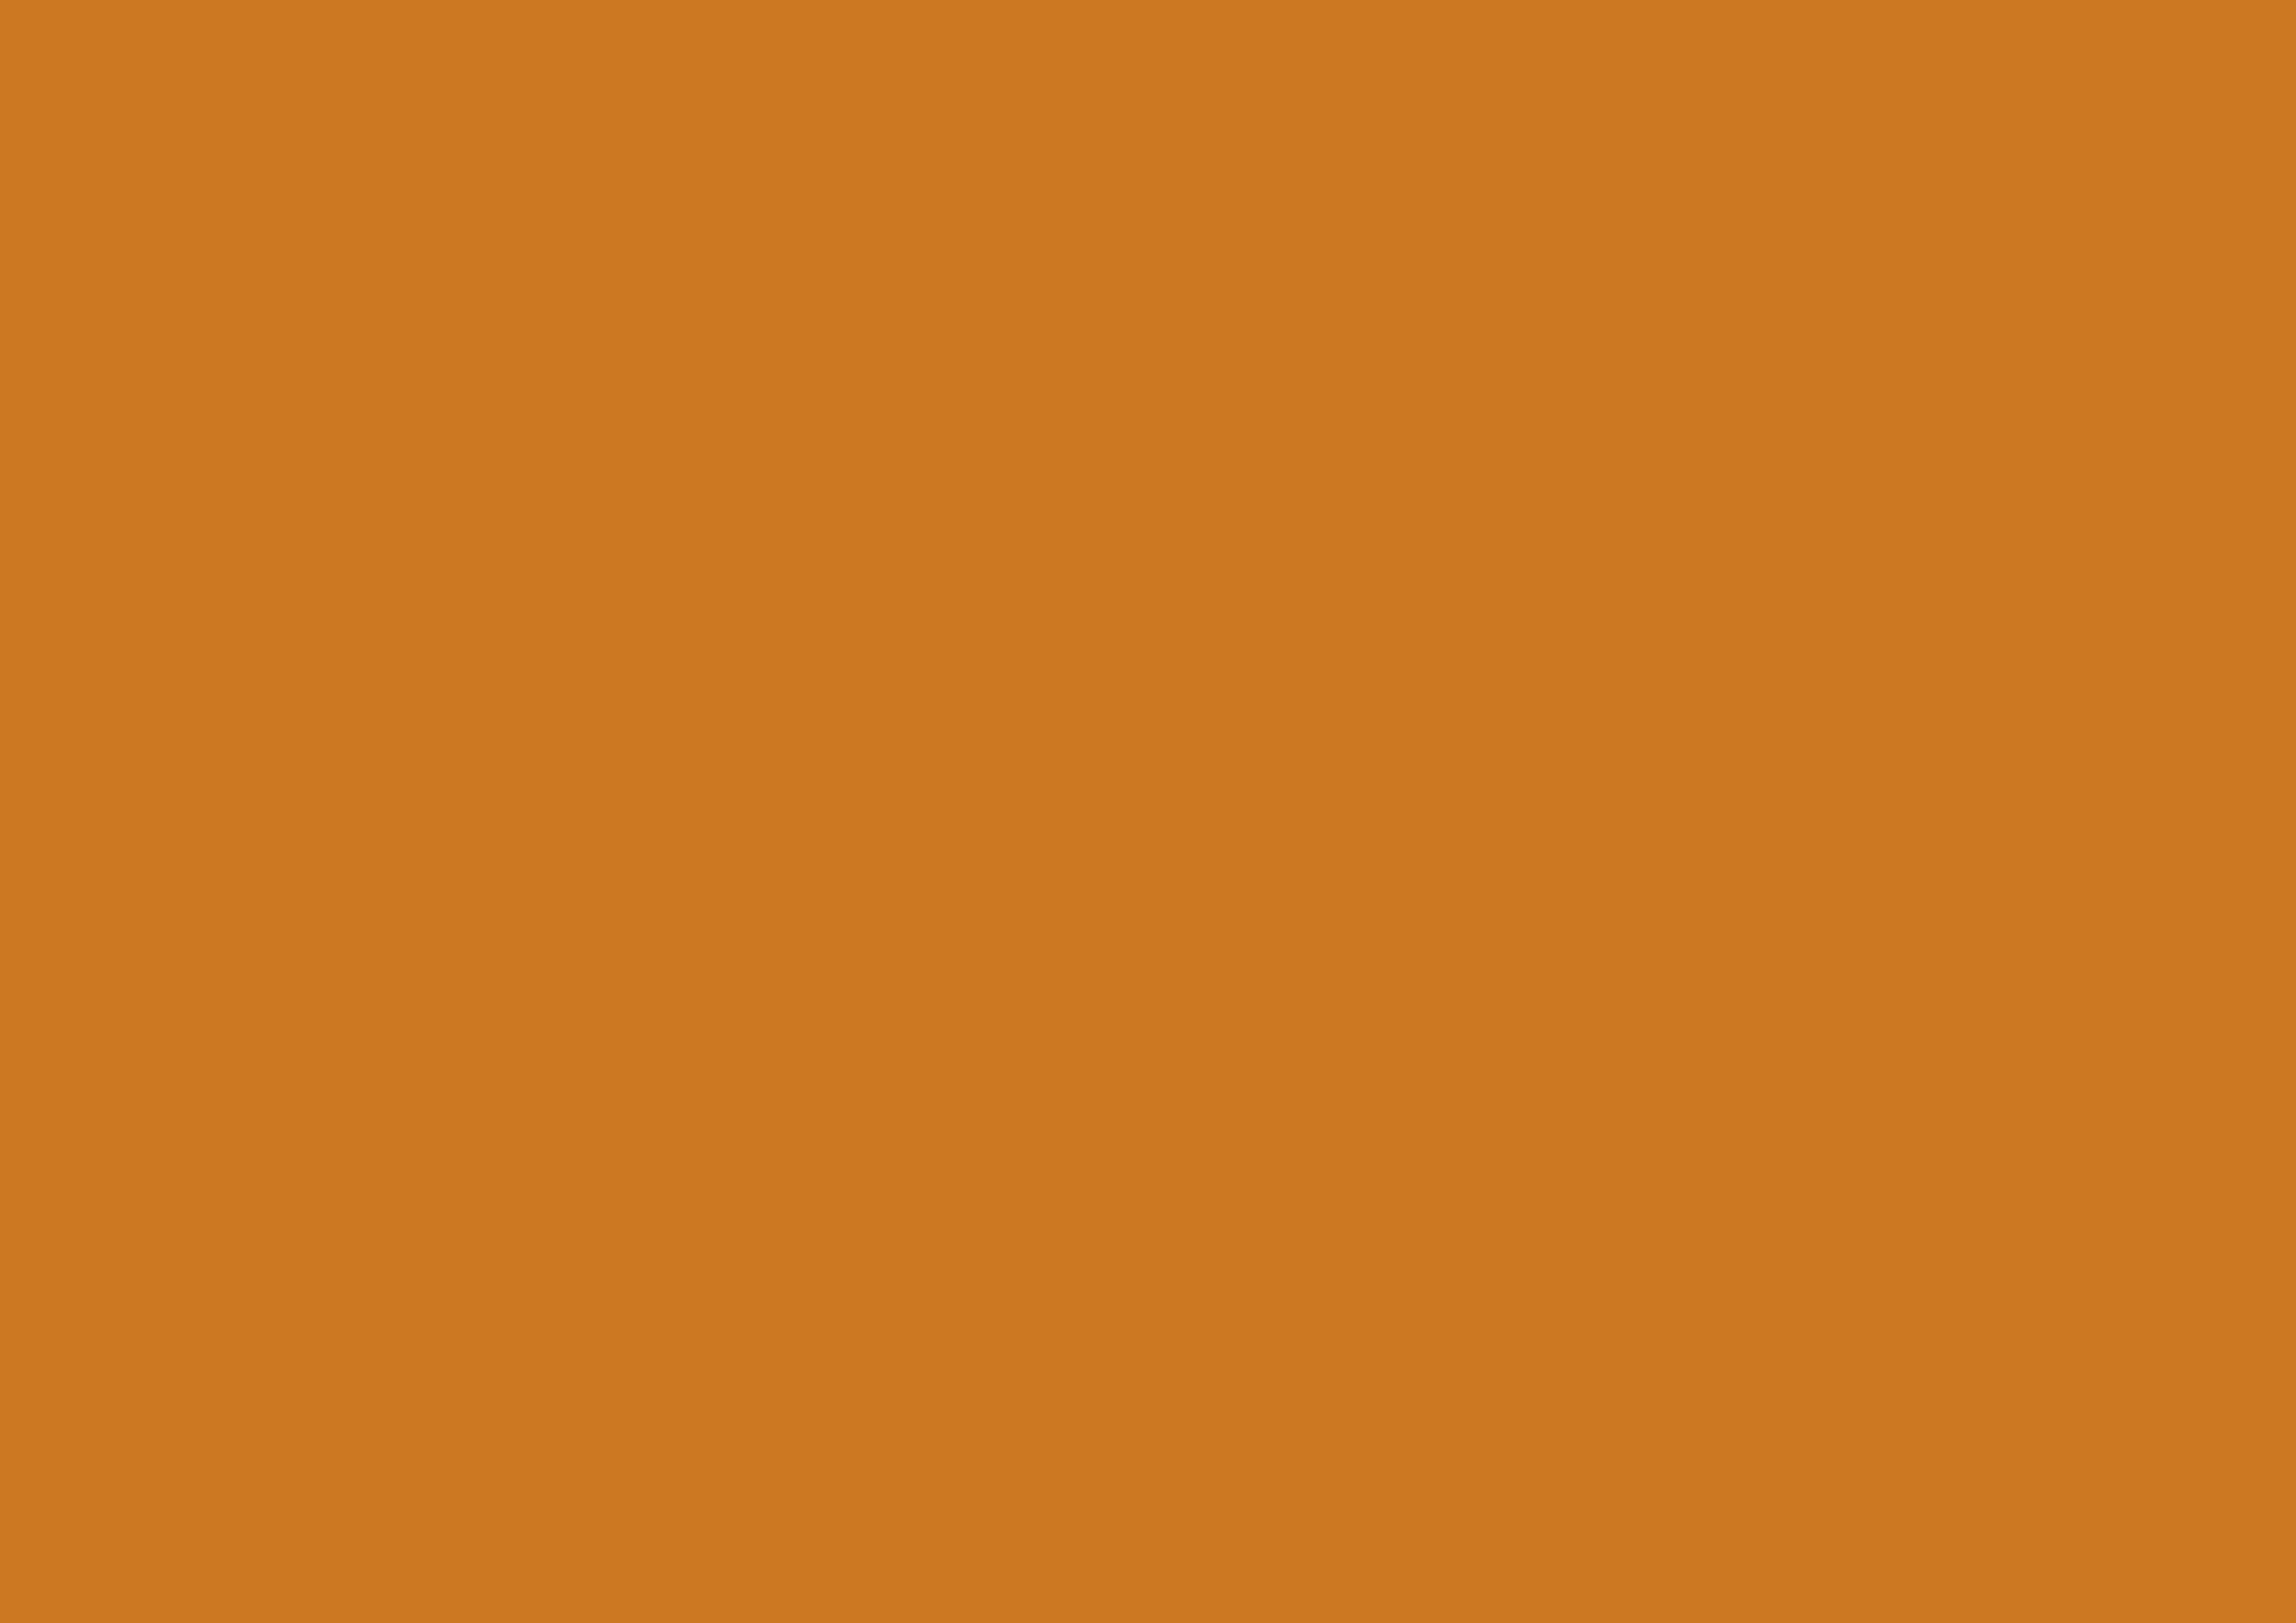 3508x2480 Ochre Solid Color Background